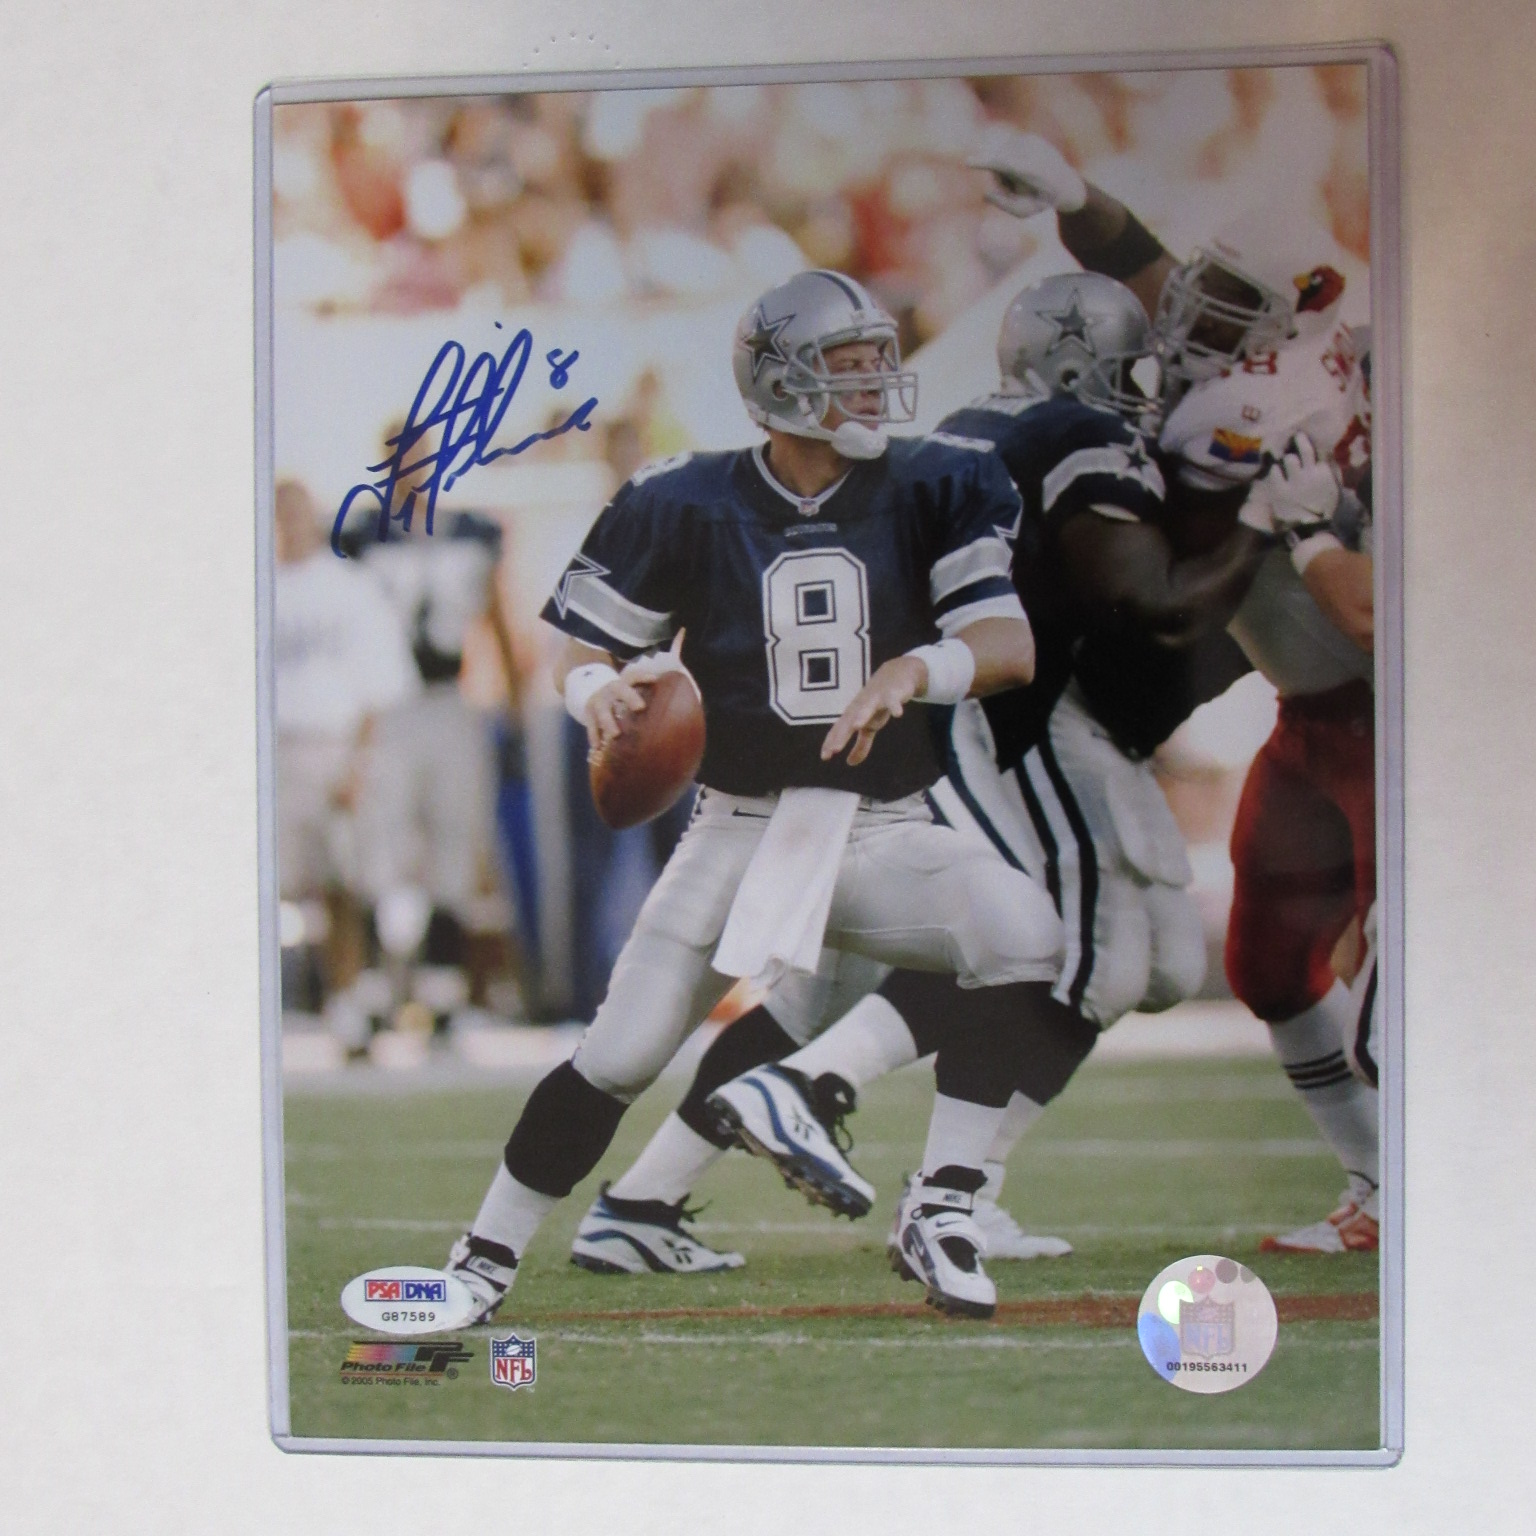 reputable site 35a54 84b56 Troy Aikman Autographed 8 X 10 Photograph with COA